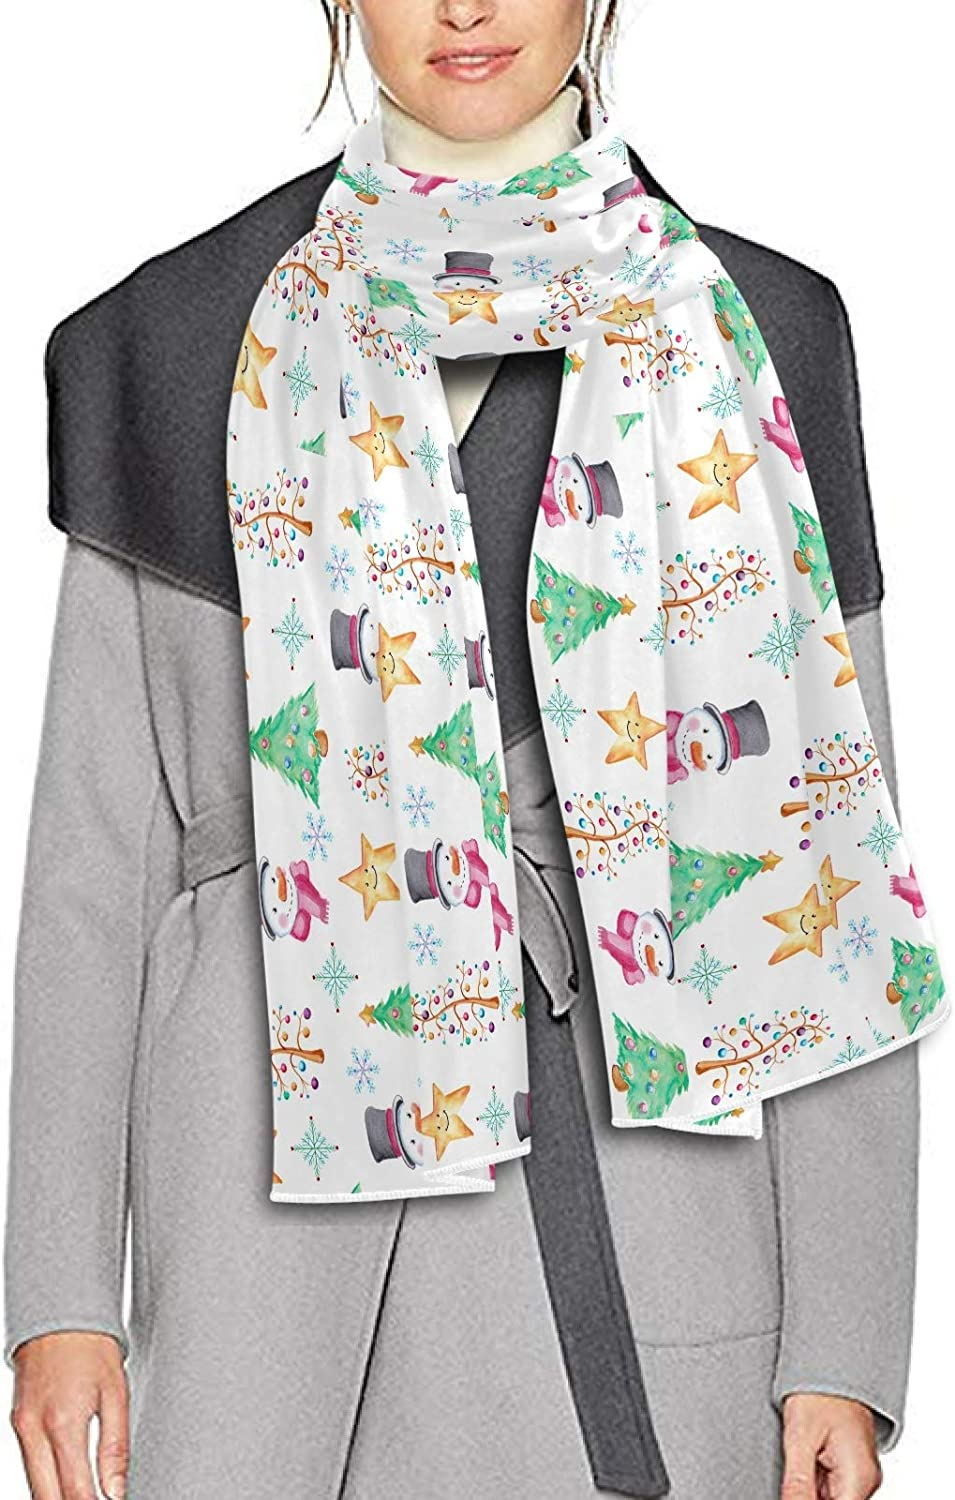 Scarf for Women and Men Snowman Golden Stars Christmas Shawls Blanket Scarf wraps Warm soft Winter Long Scarves Lightweight